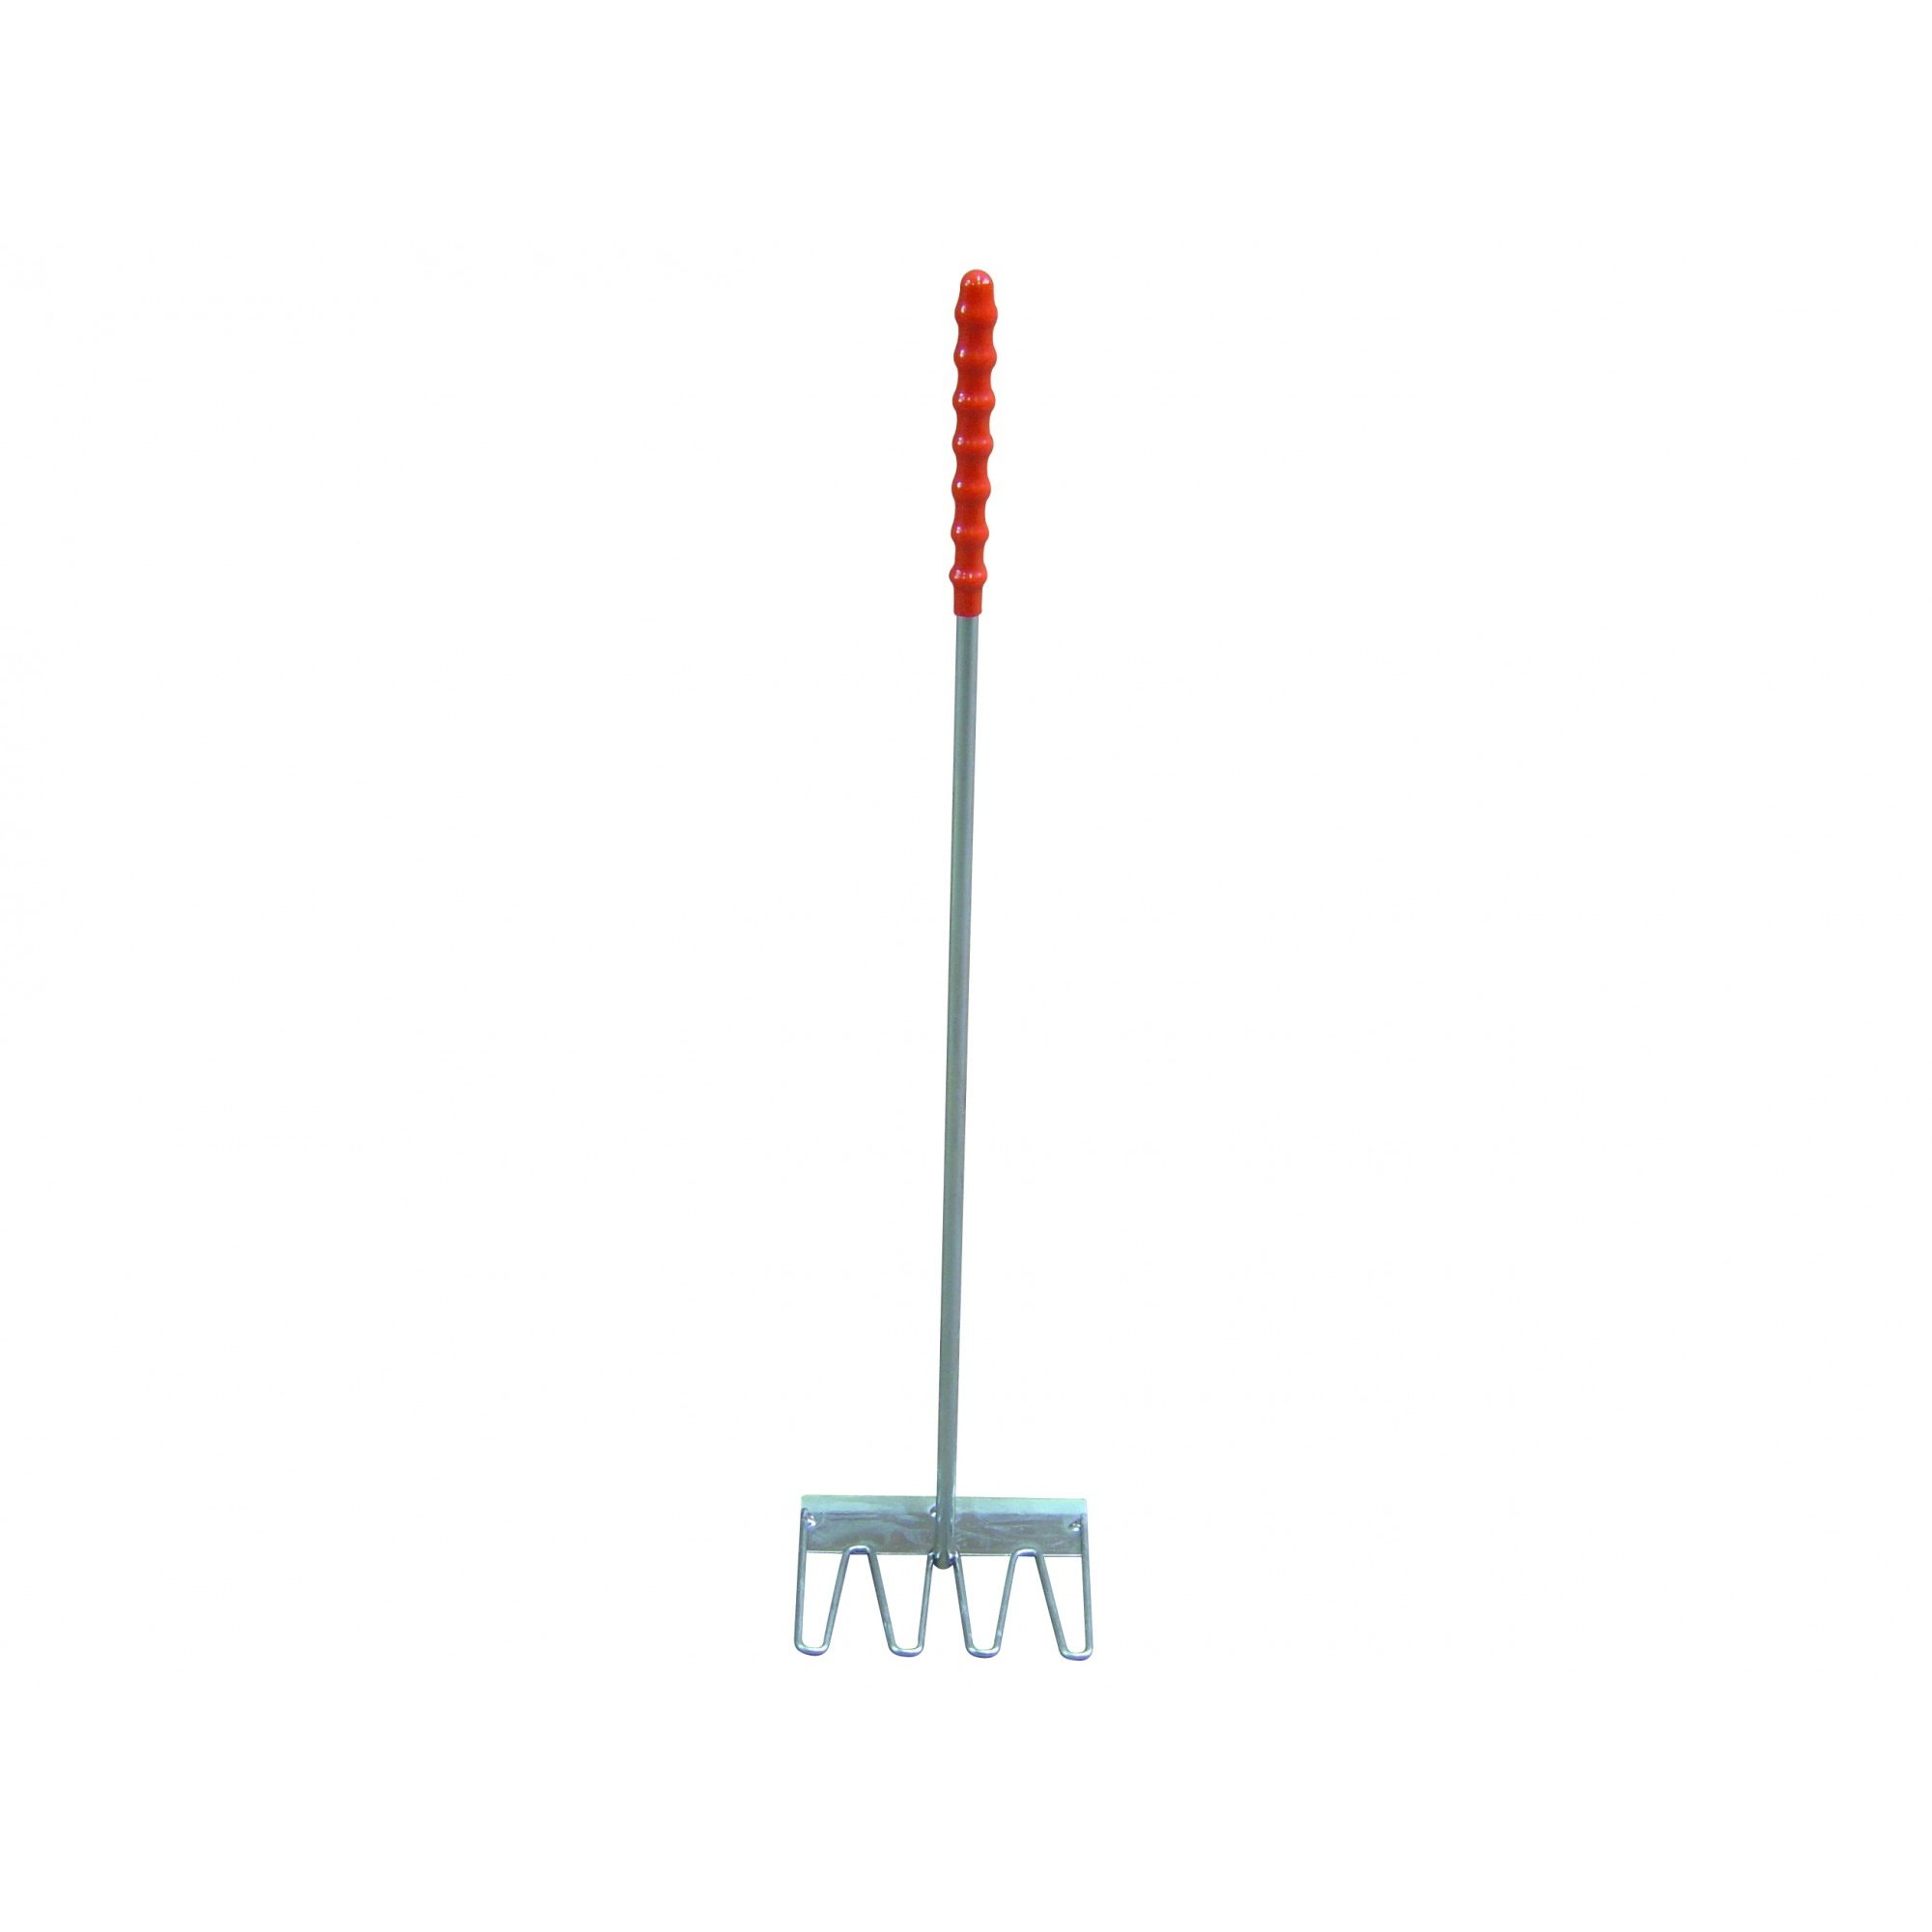 Stubbs Stable Mate High Spare Rake S45815 (One Size) (Black)